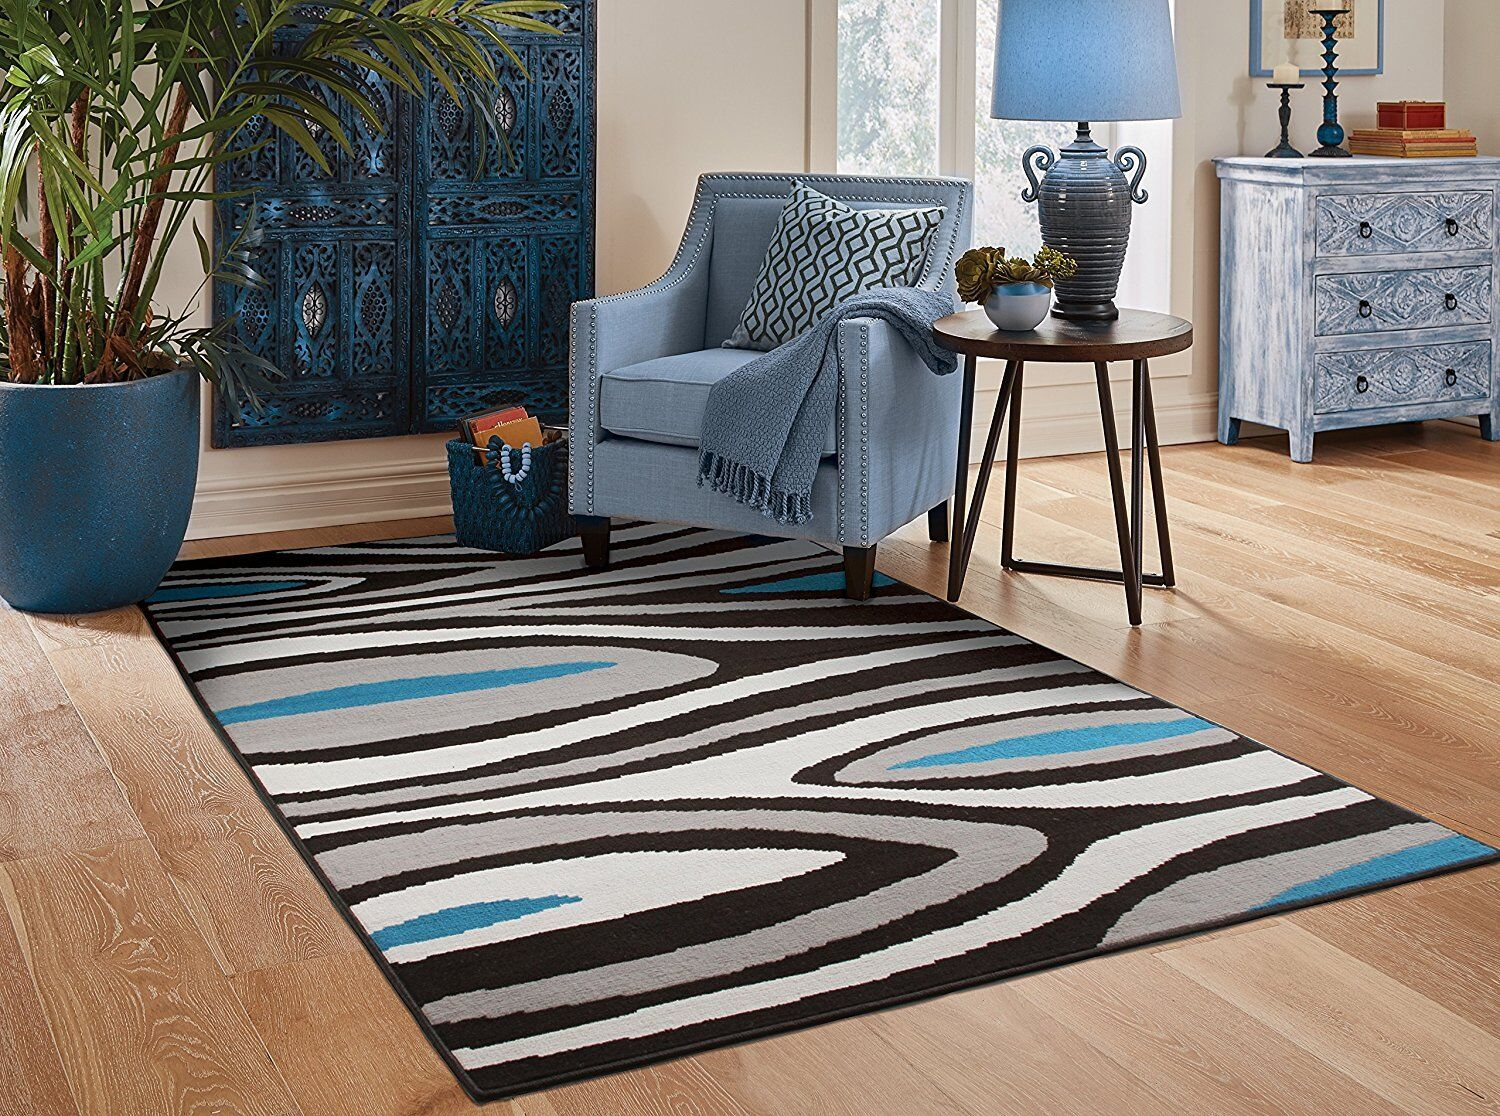 8x10 Area Rugs For Living Room | Rug10